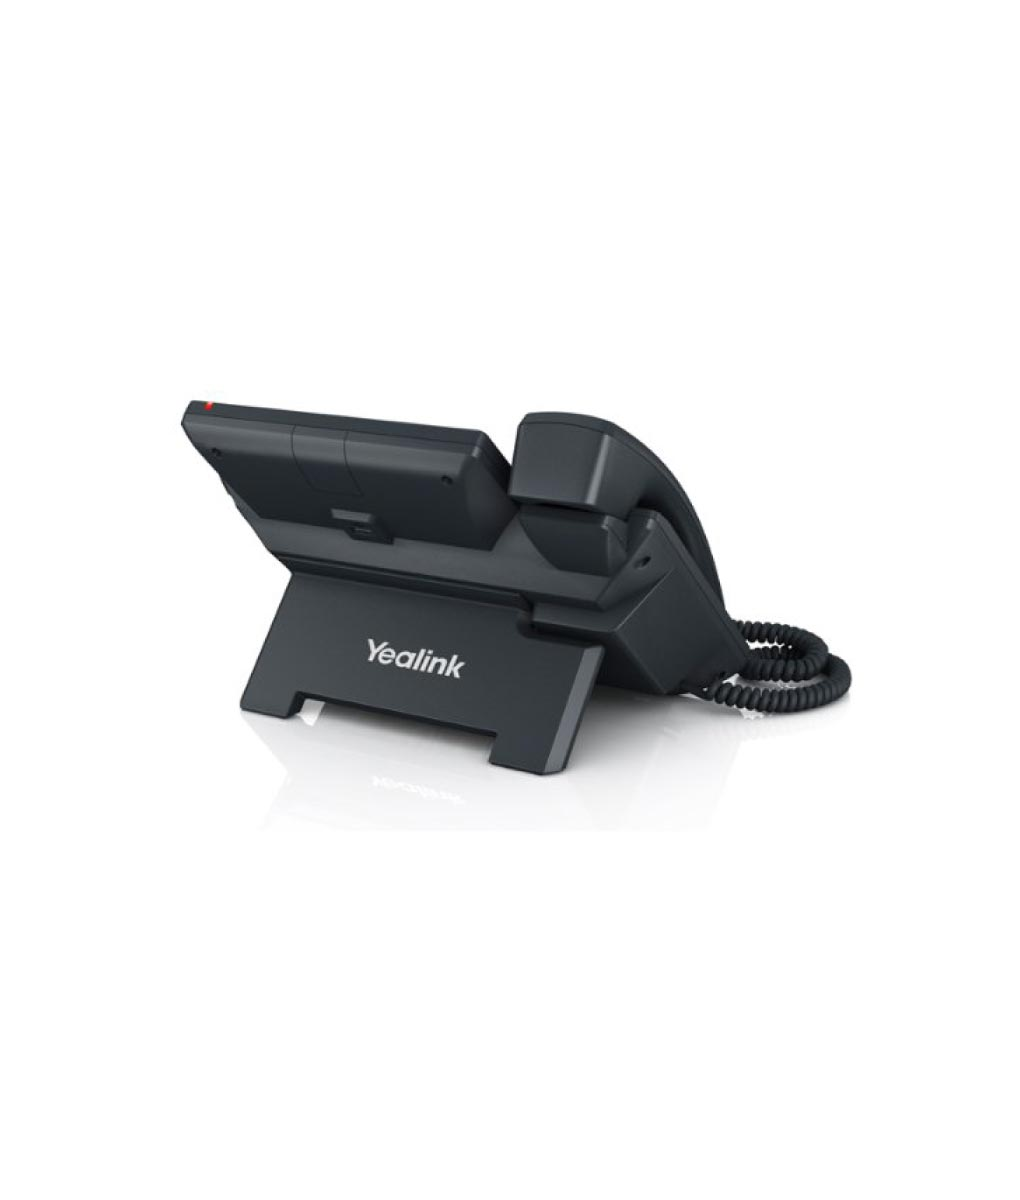 Yealink T41p Ip Desk Phone With 6 Accounts Ultraview